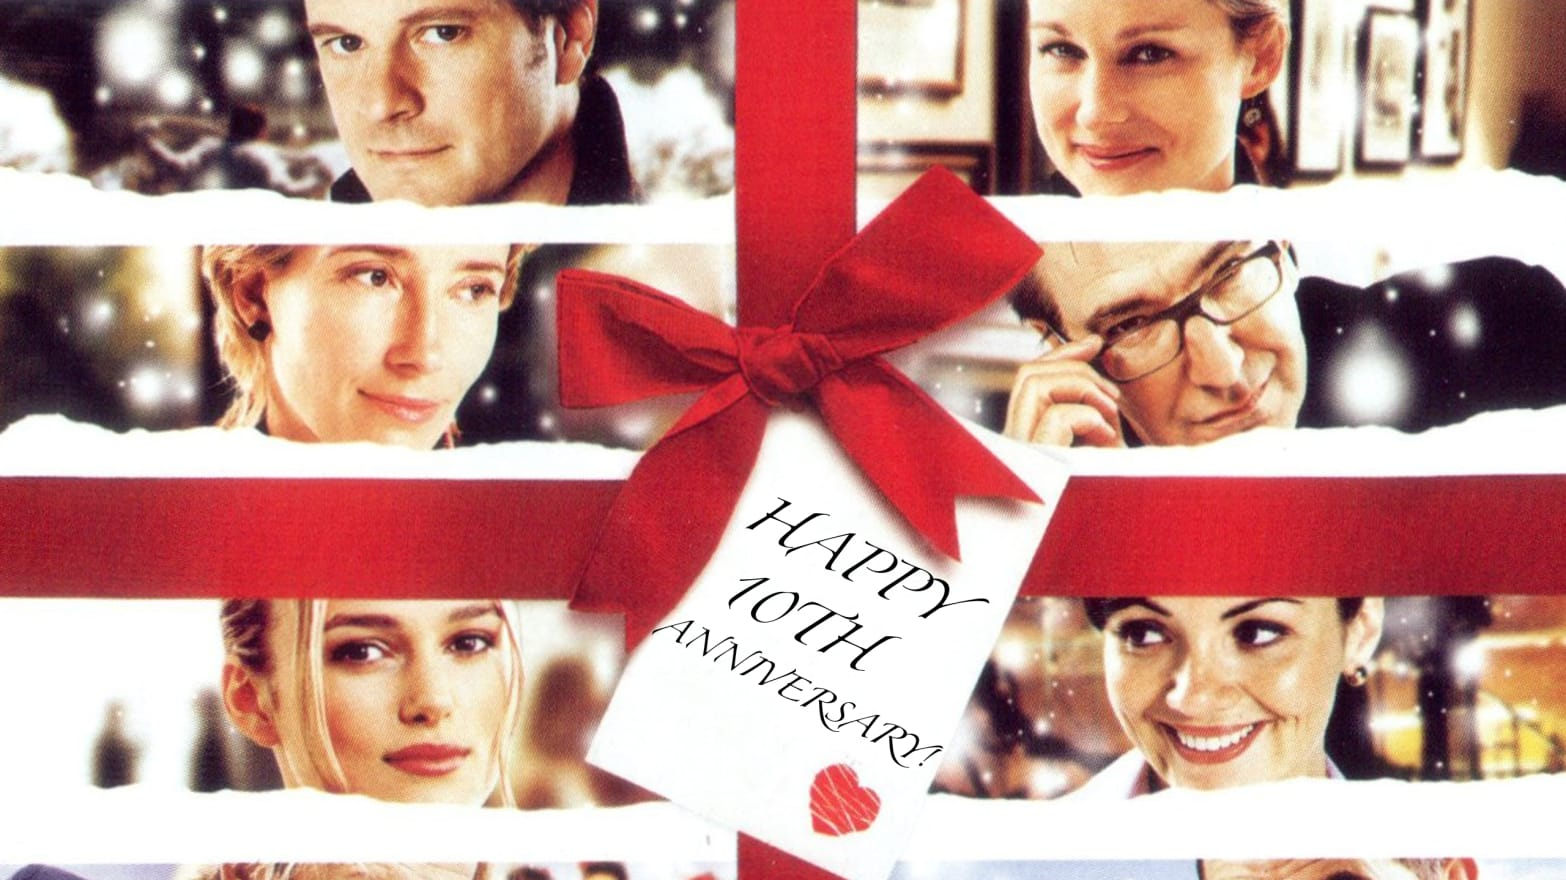 This Christmas Cast.Love Actually S 10th Anniversary The Cast And Crew